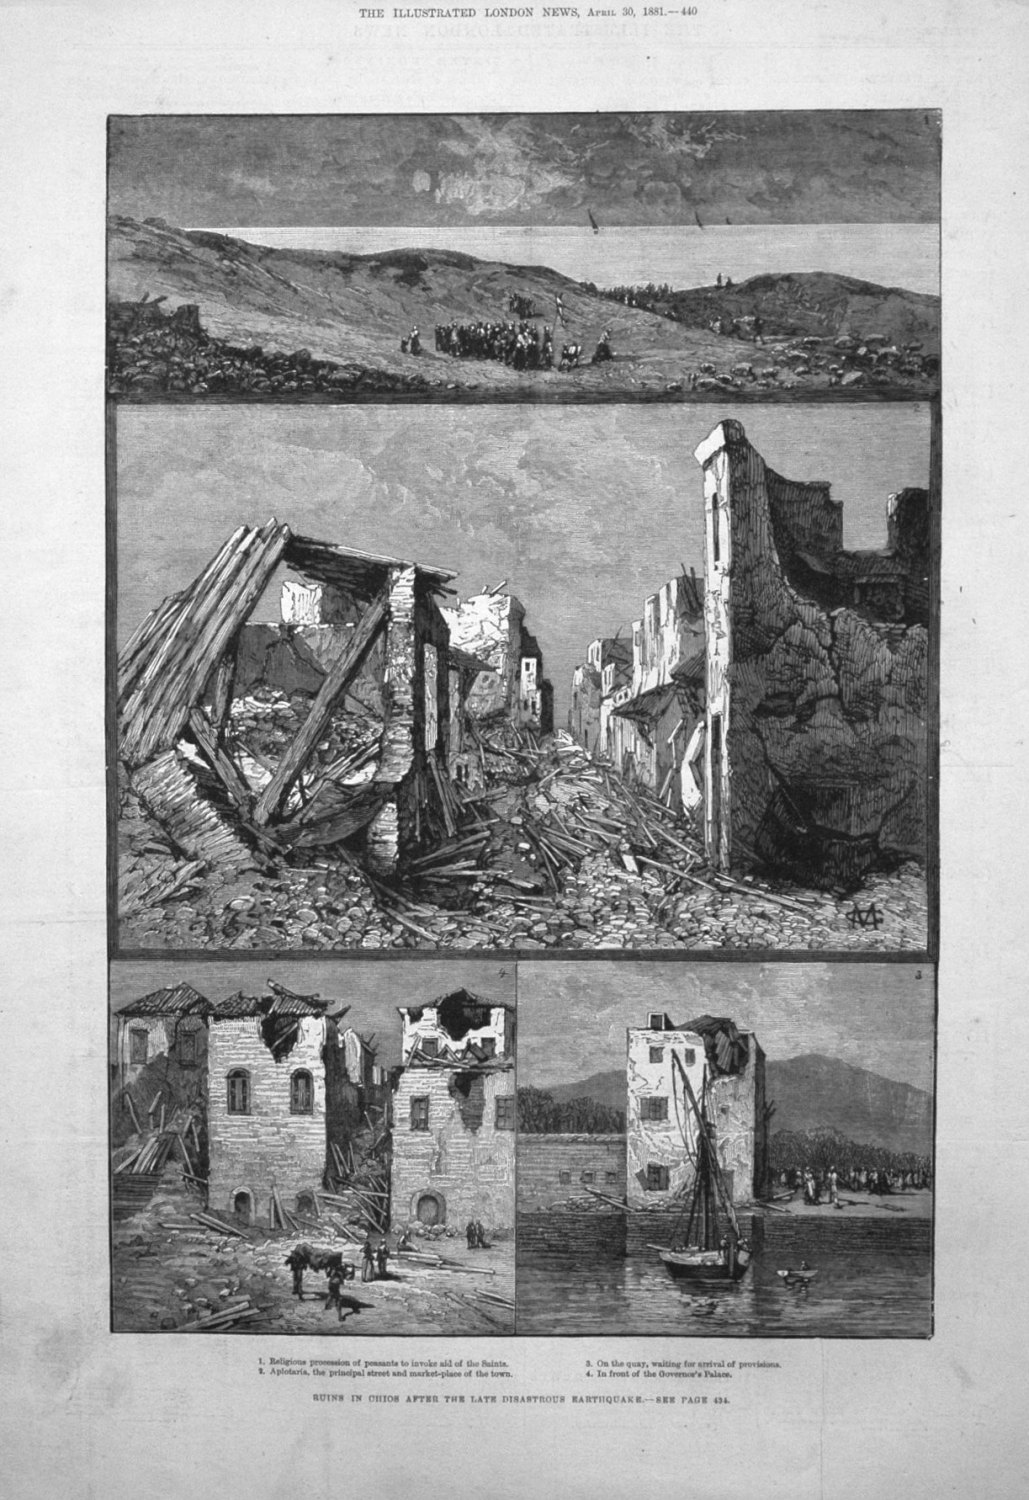 Ruins in Chios after the Late Disastrous Earthquake. 1881